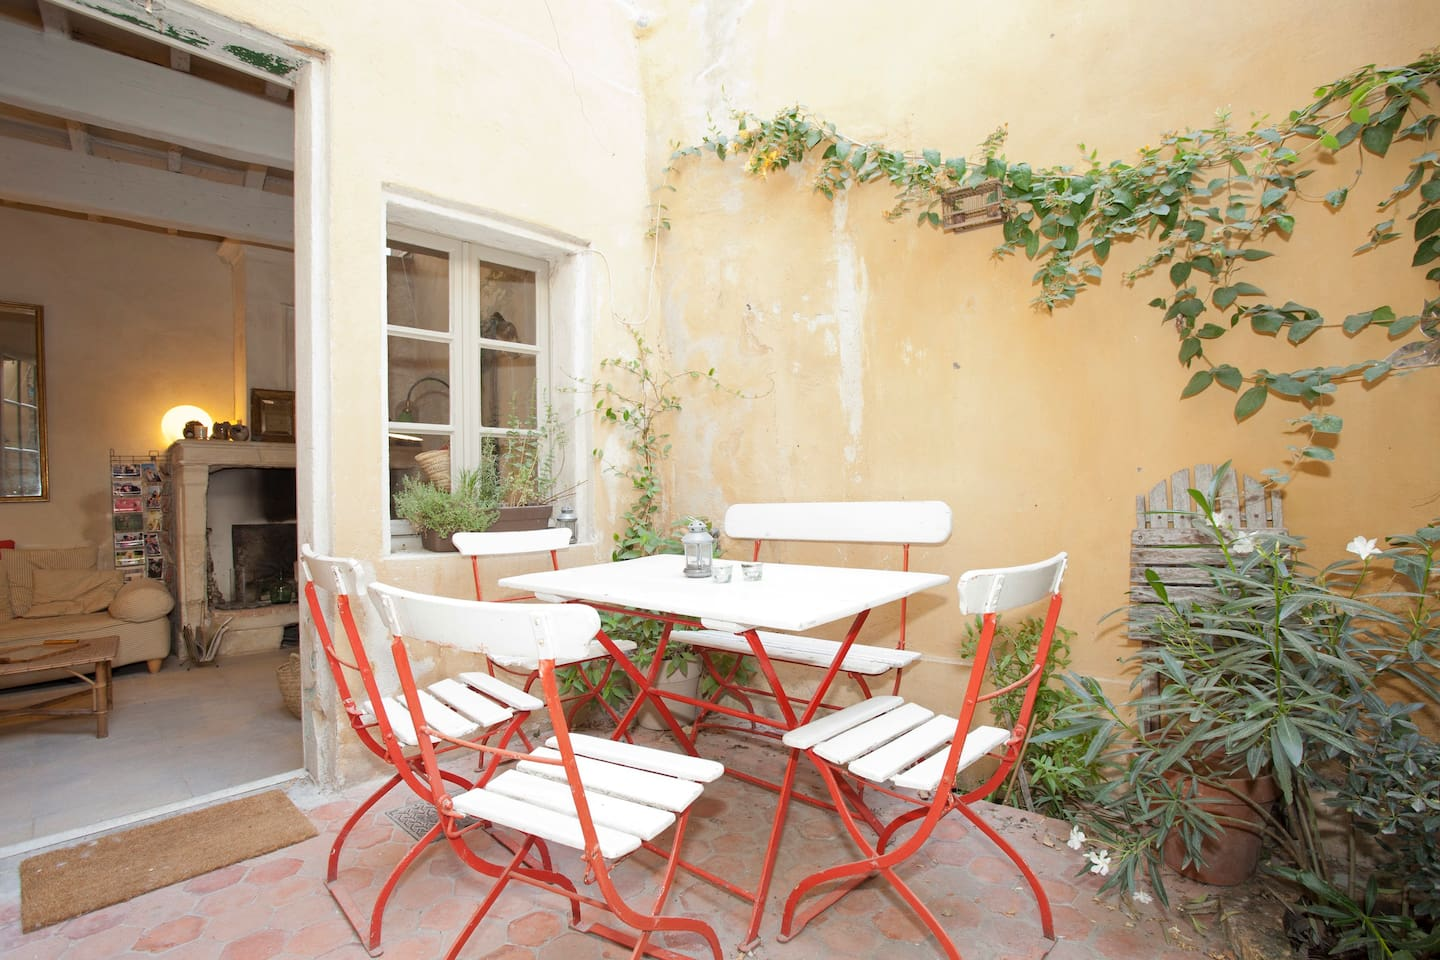 House of charm in Arles